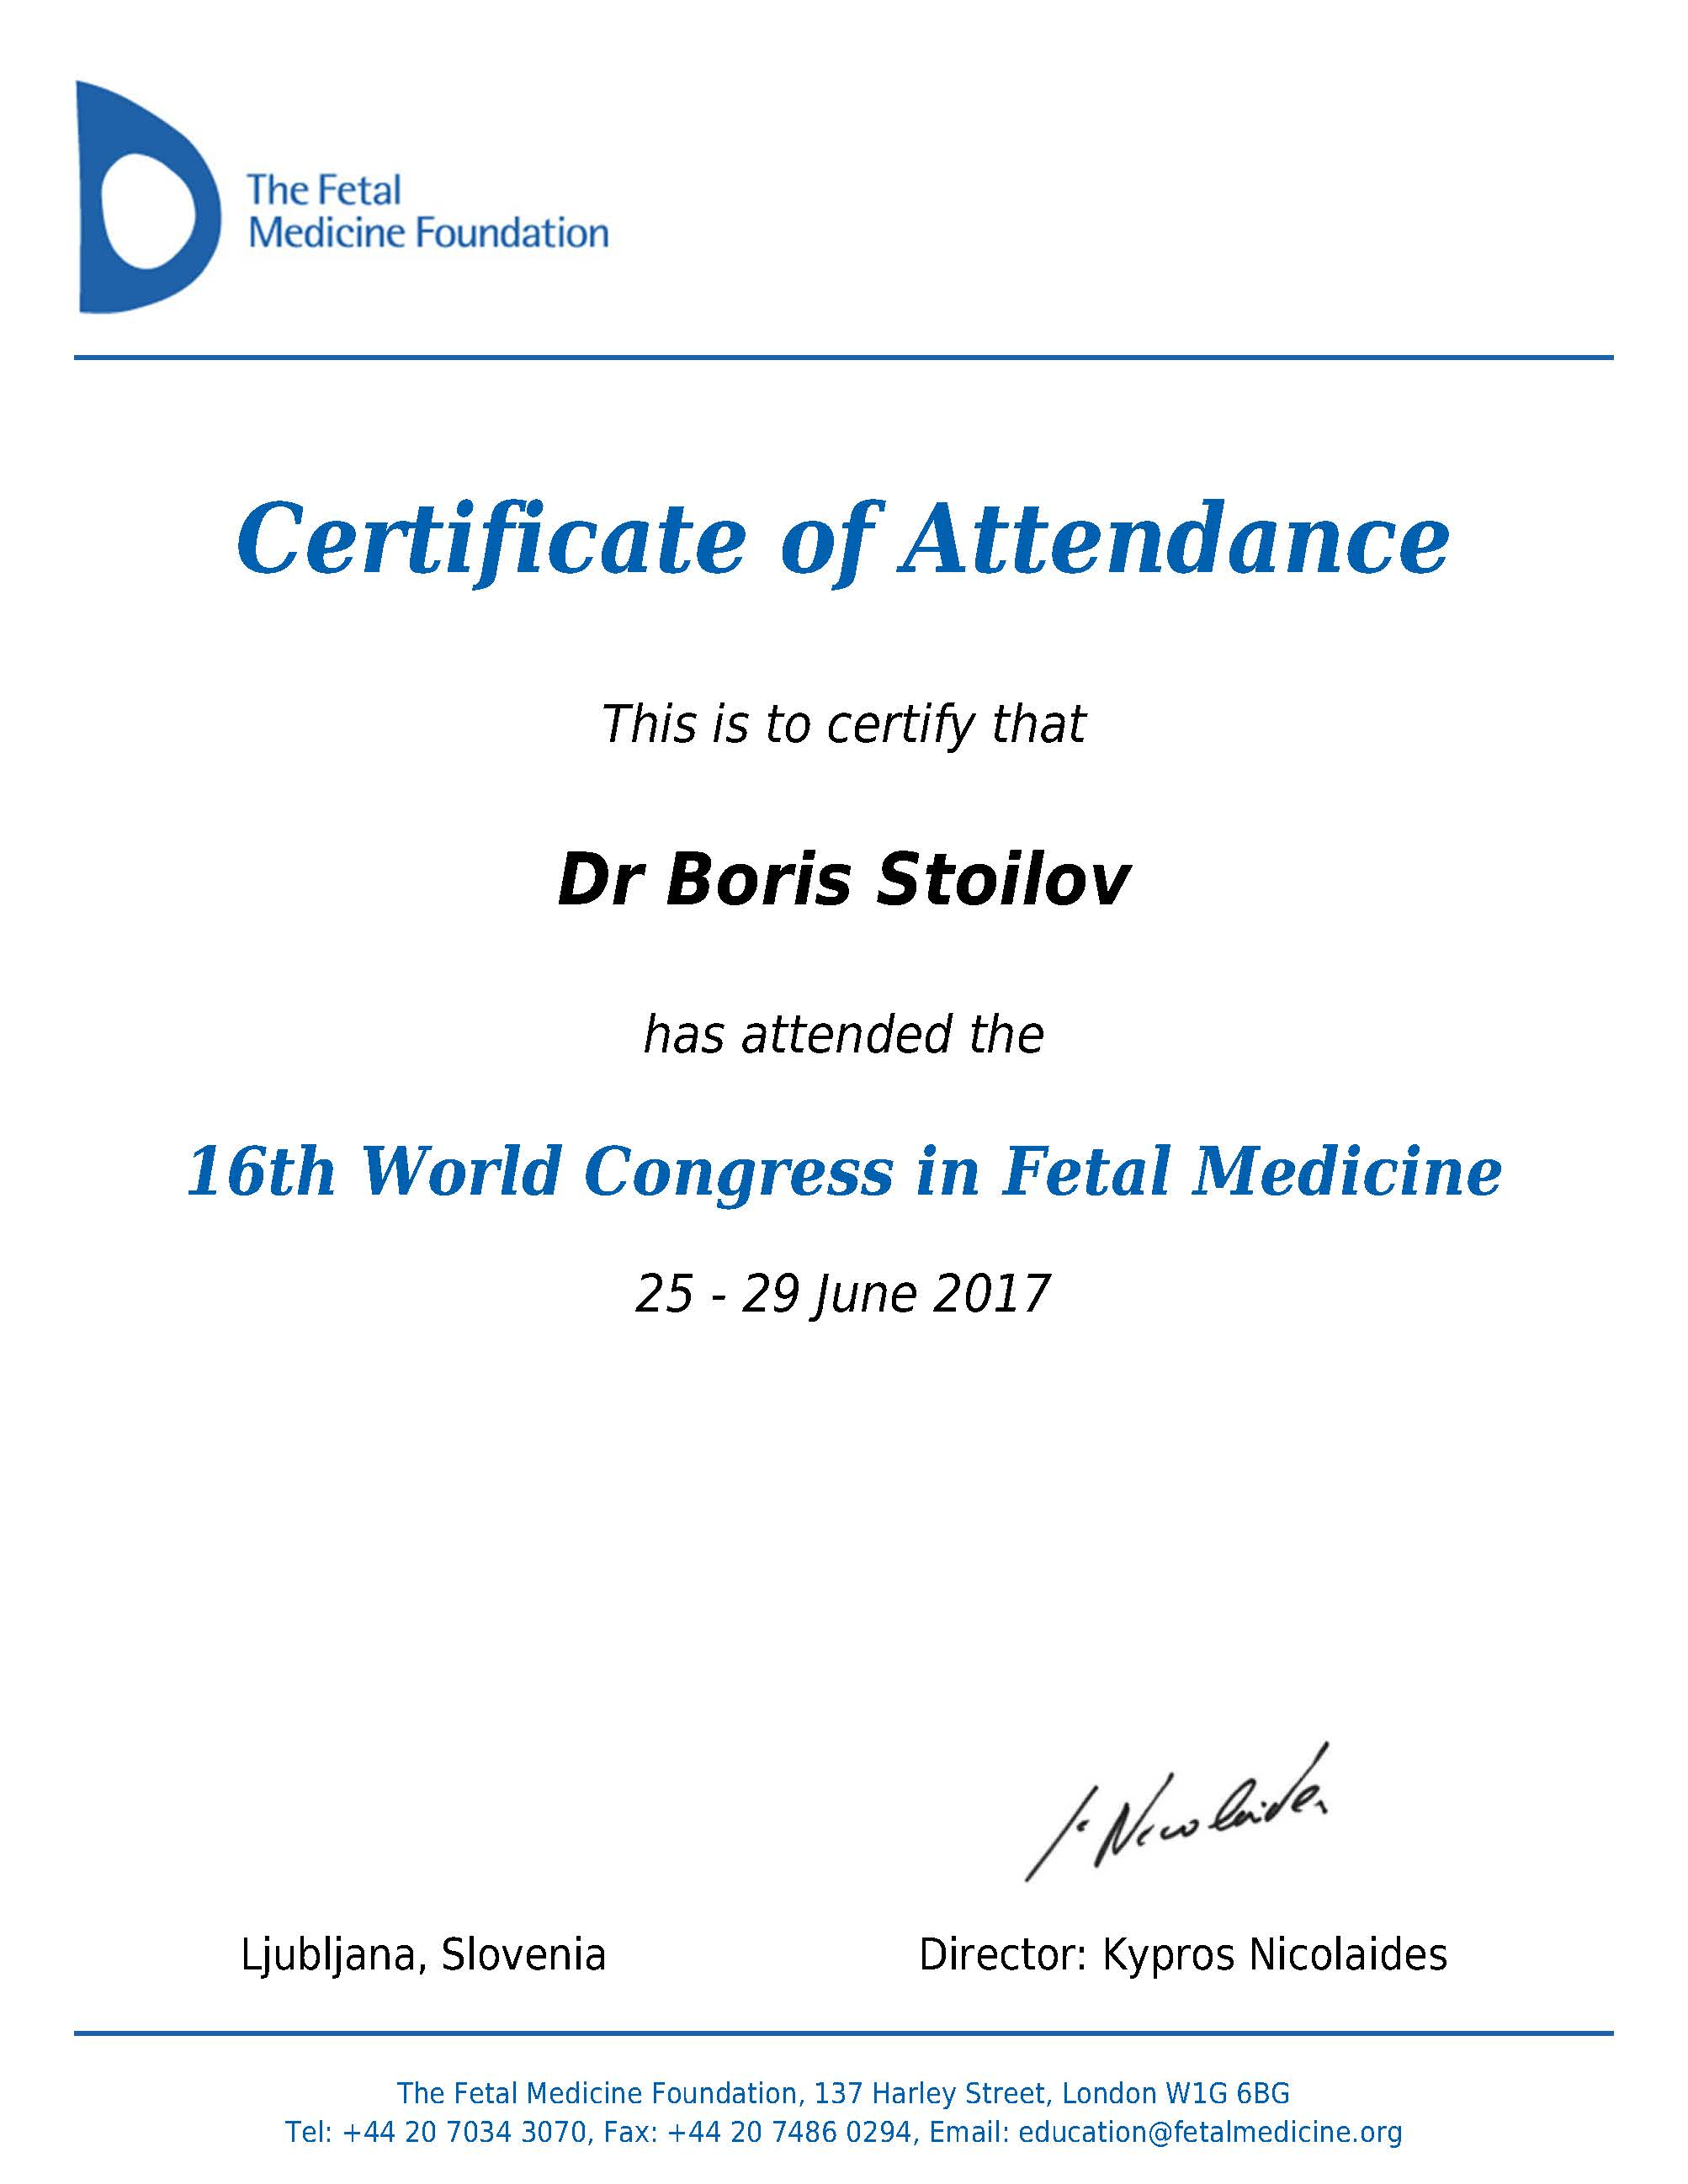 Certificate of Attendance, 16th World Congress in Fetal Medicine